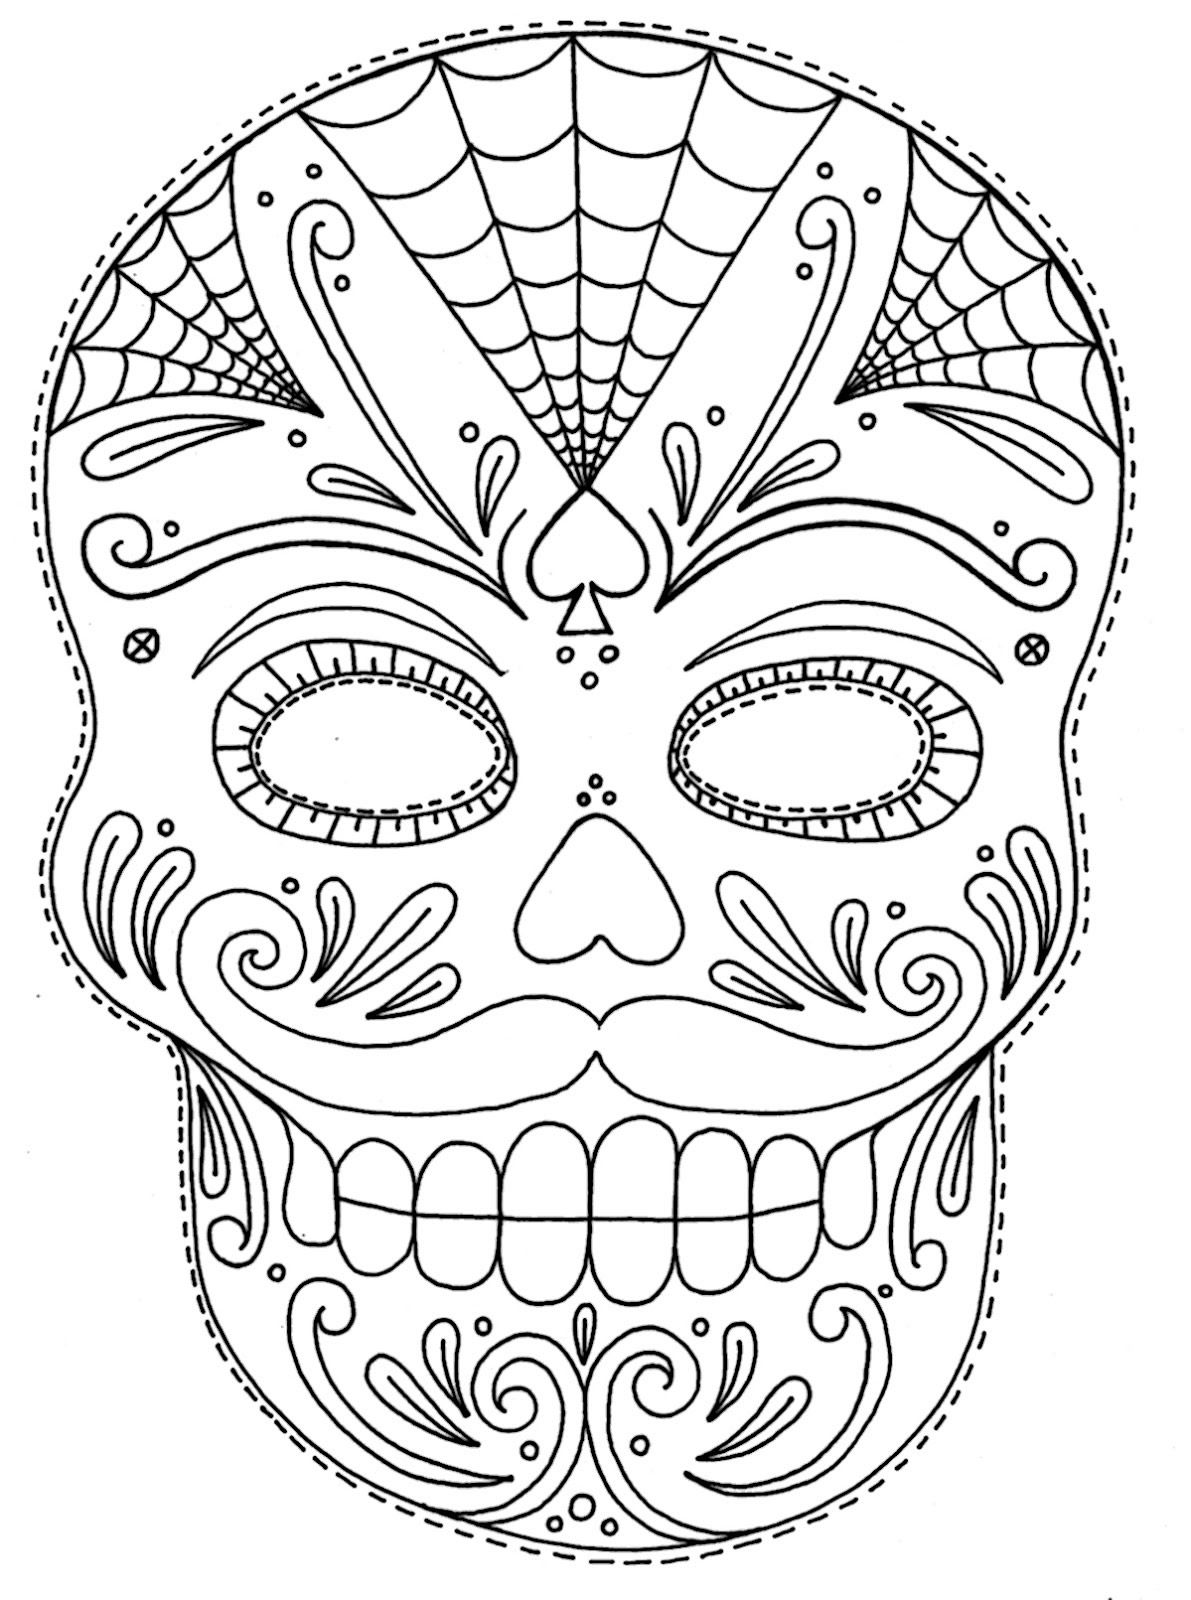 Coloring pictures skulls - Moustached Sugar Skull Mask Day Of The Dead Coloring Page